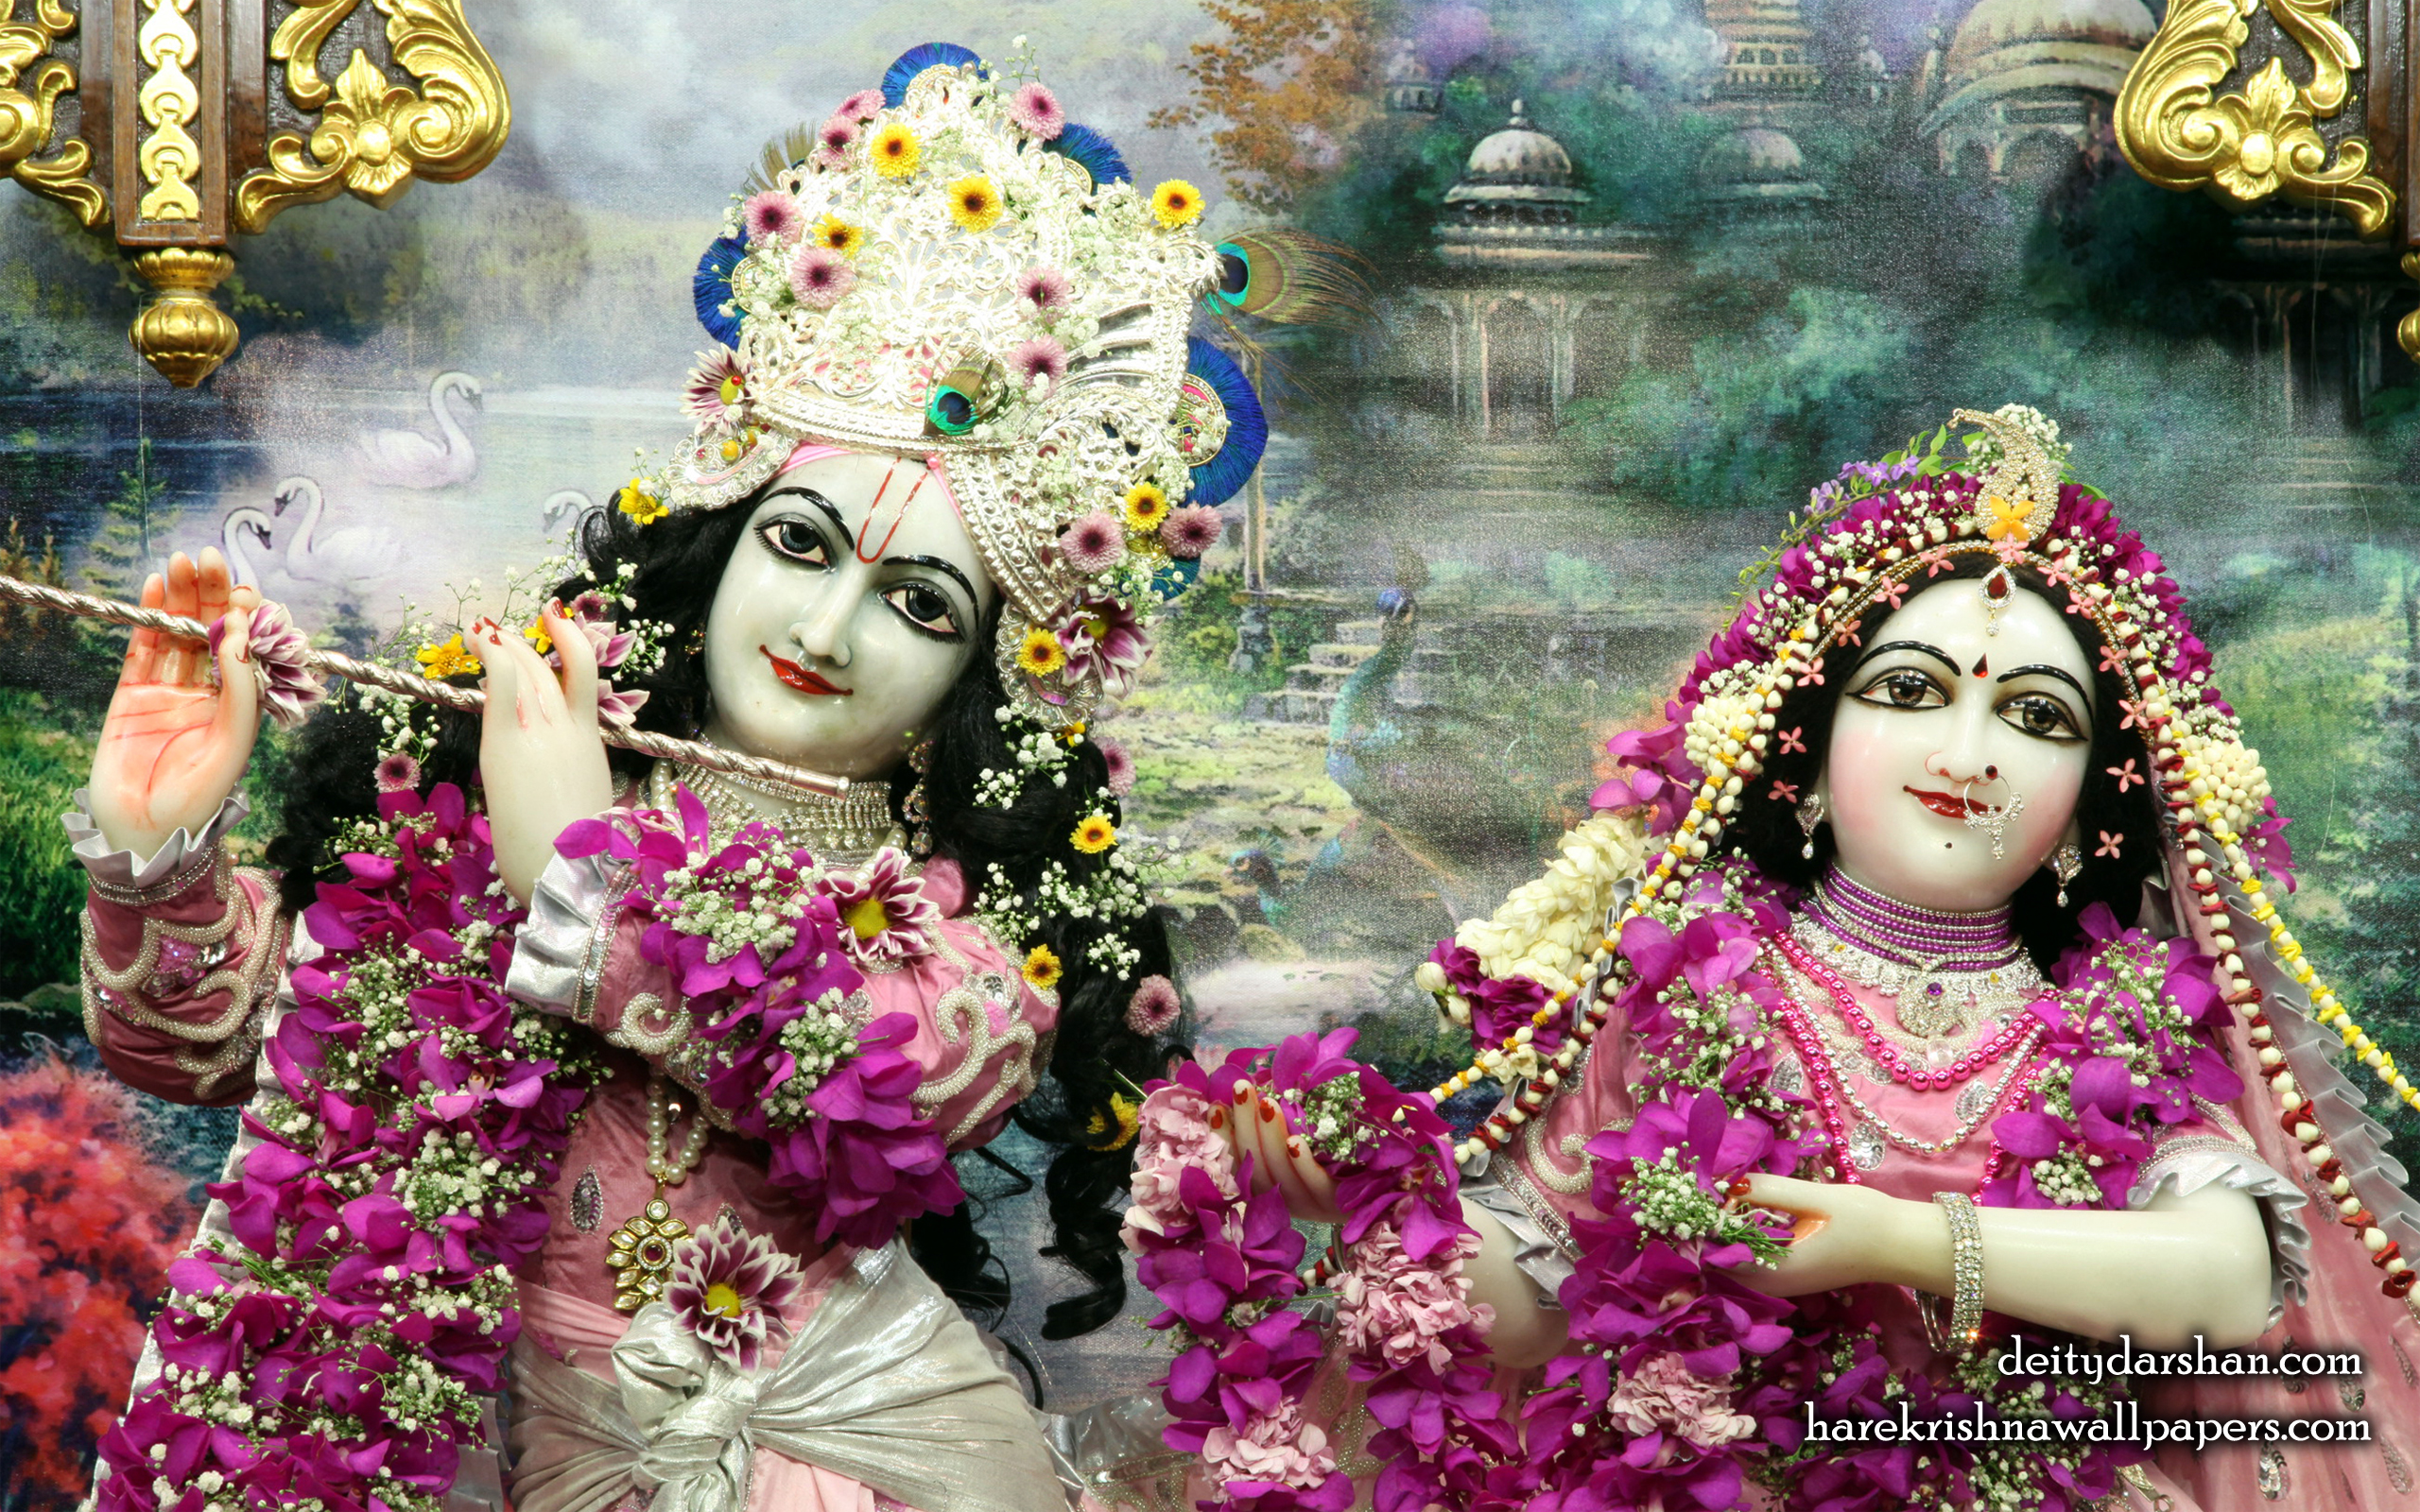 Sri Sri Radha Gopinath Close up Wallpaper (051) Size 2560x1600 Download